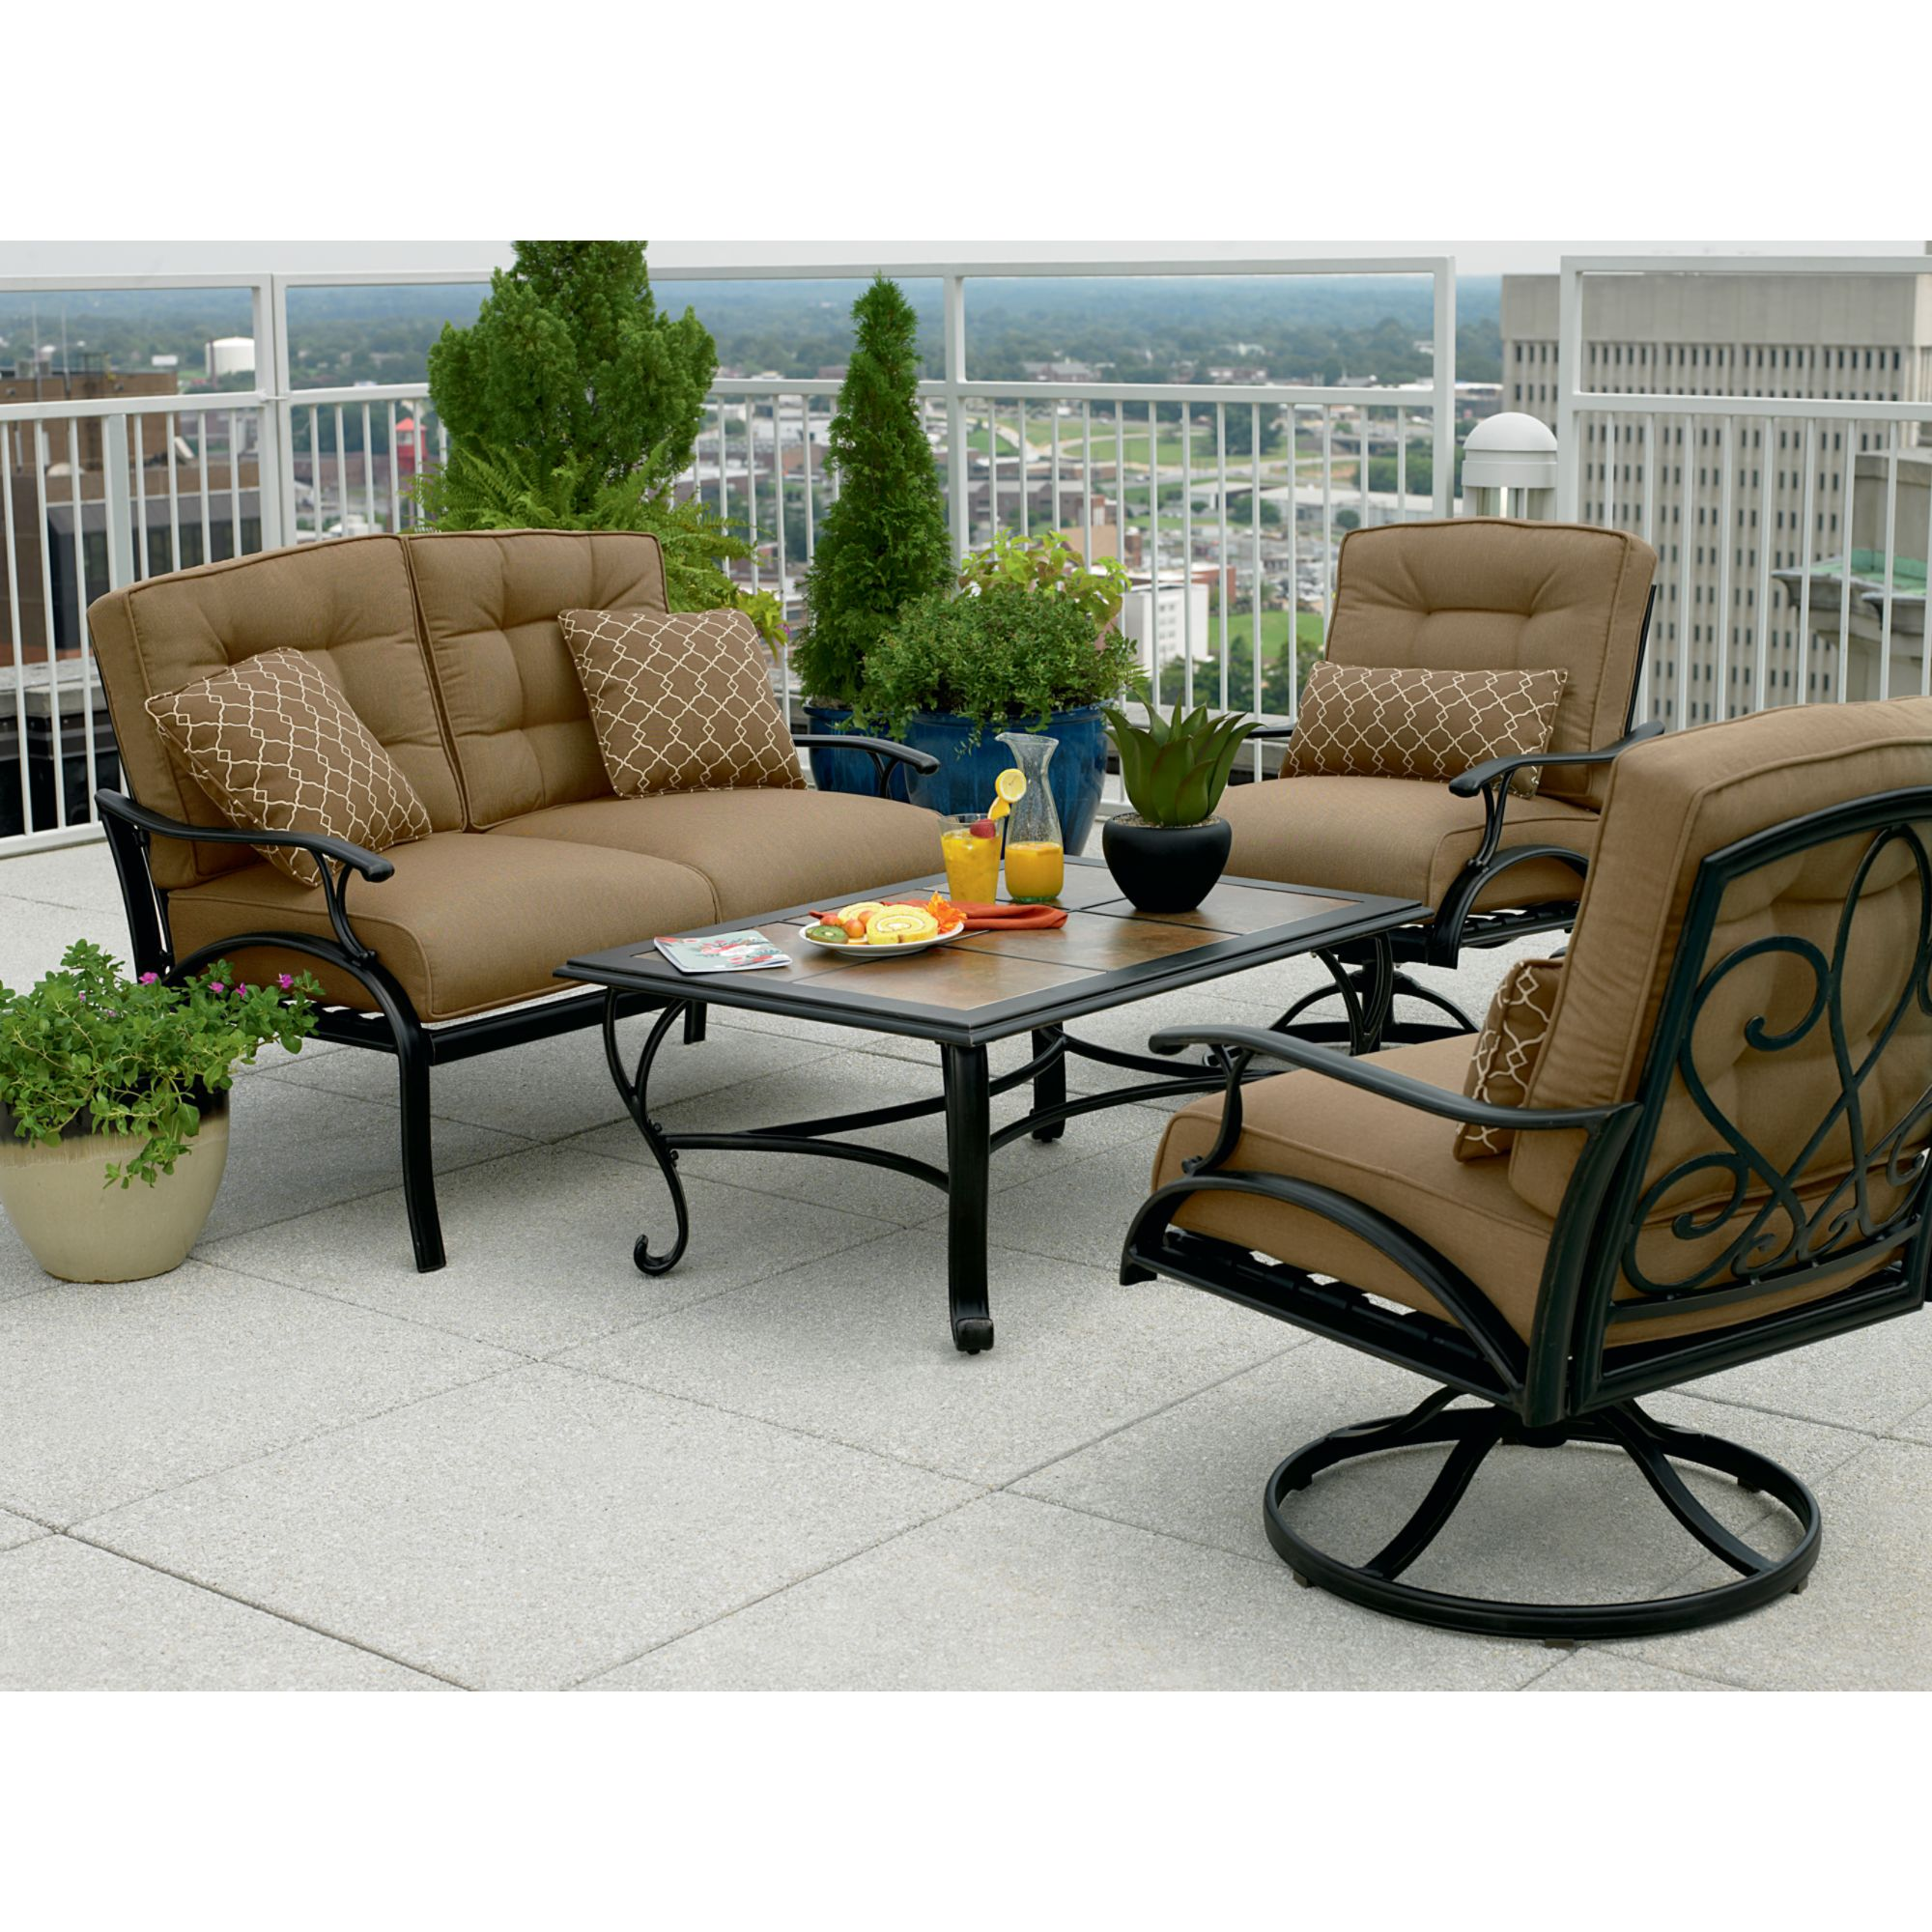 Caitlyn Ceramic Patio Seating Set Great Outdoor Ideas